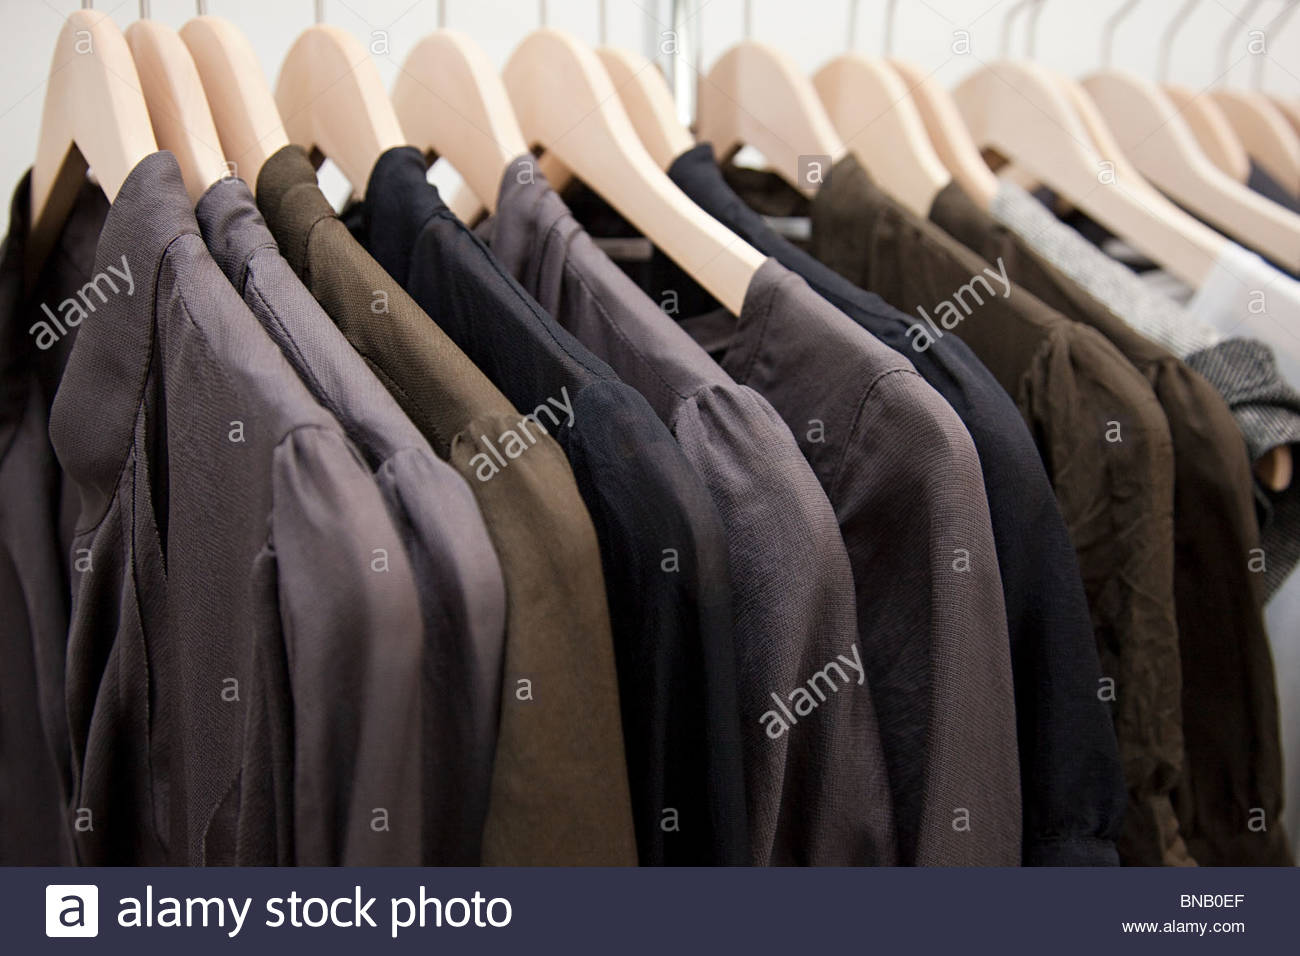 Clothing on a rail - Stock Image